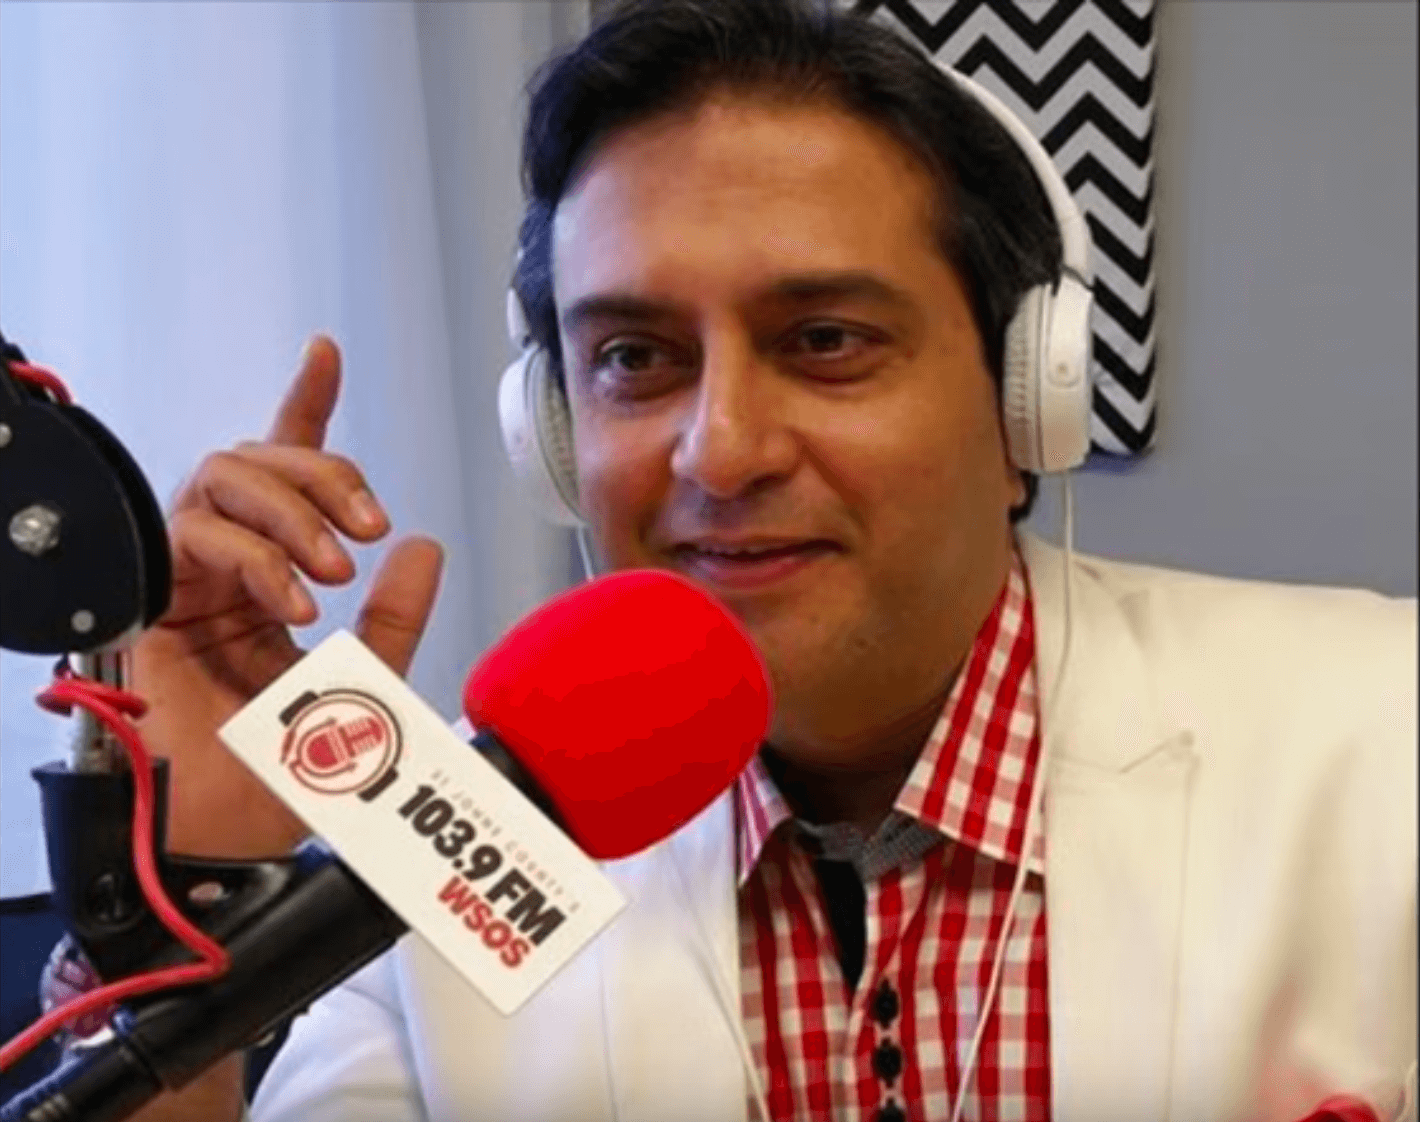 103.9 FM with Dr. Gulani: Vision Beyond 20/20